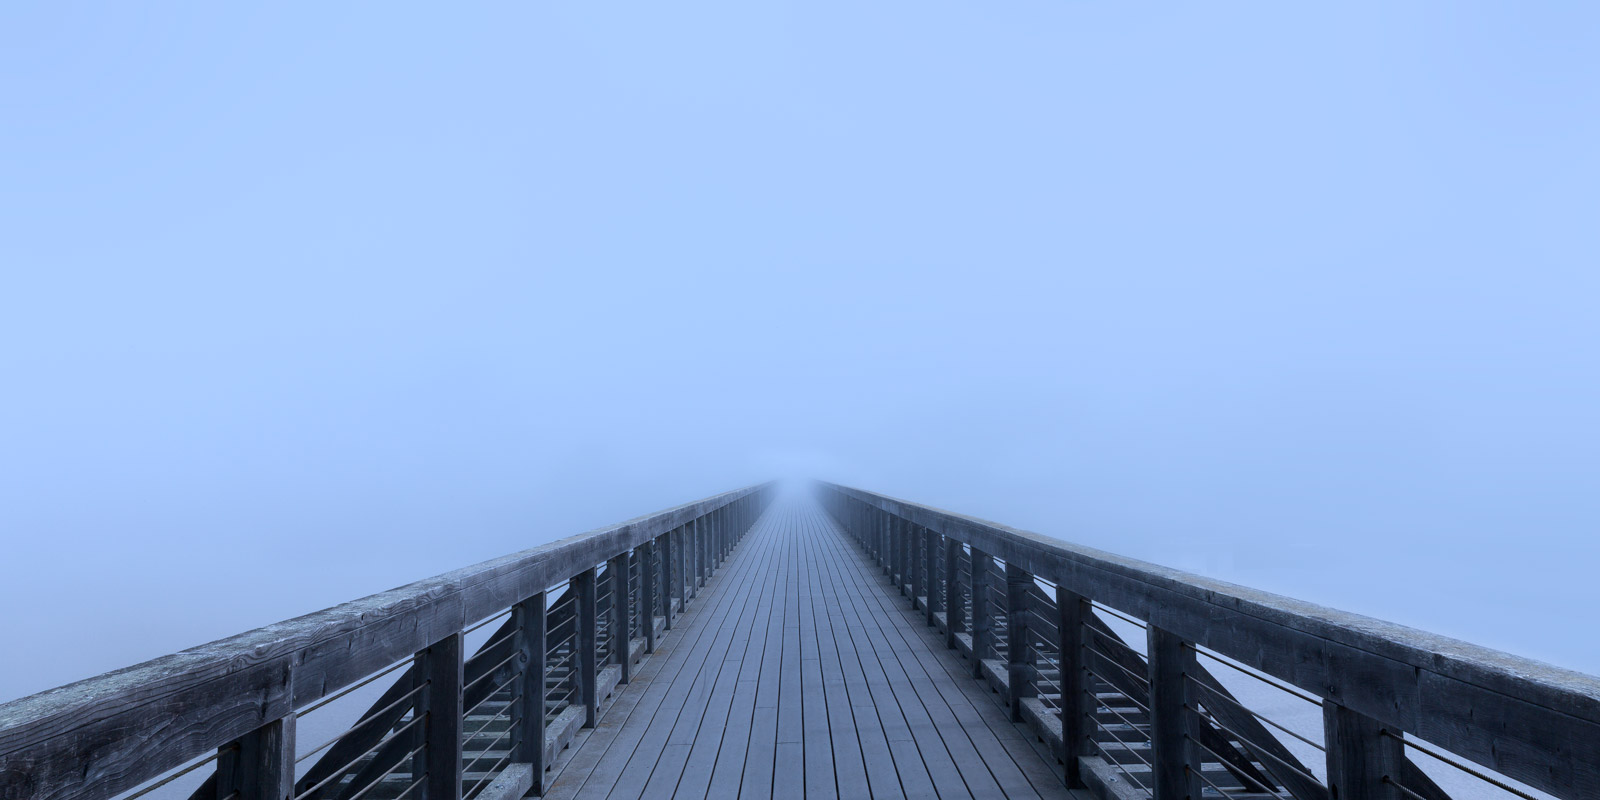 A Limited Edition, Fine Art photograph of a vanishing point of a long footbridge disappearing into the fog on the California...